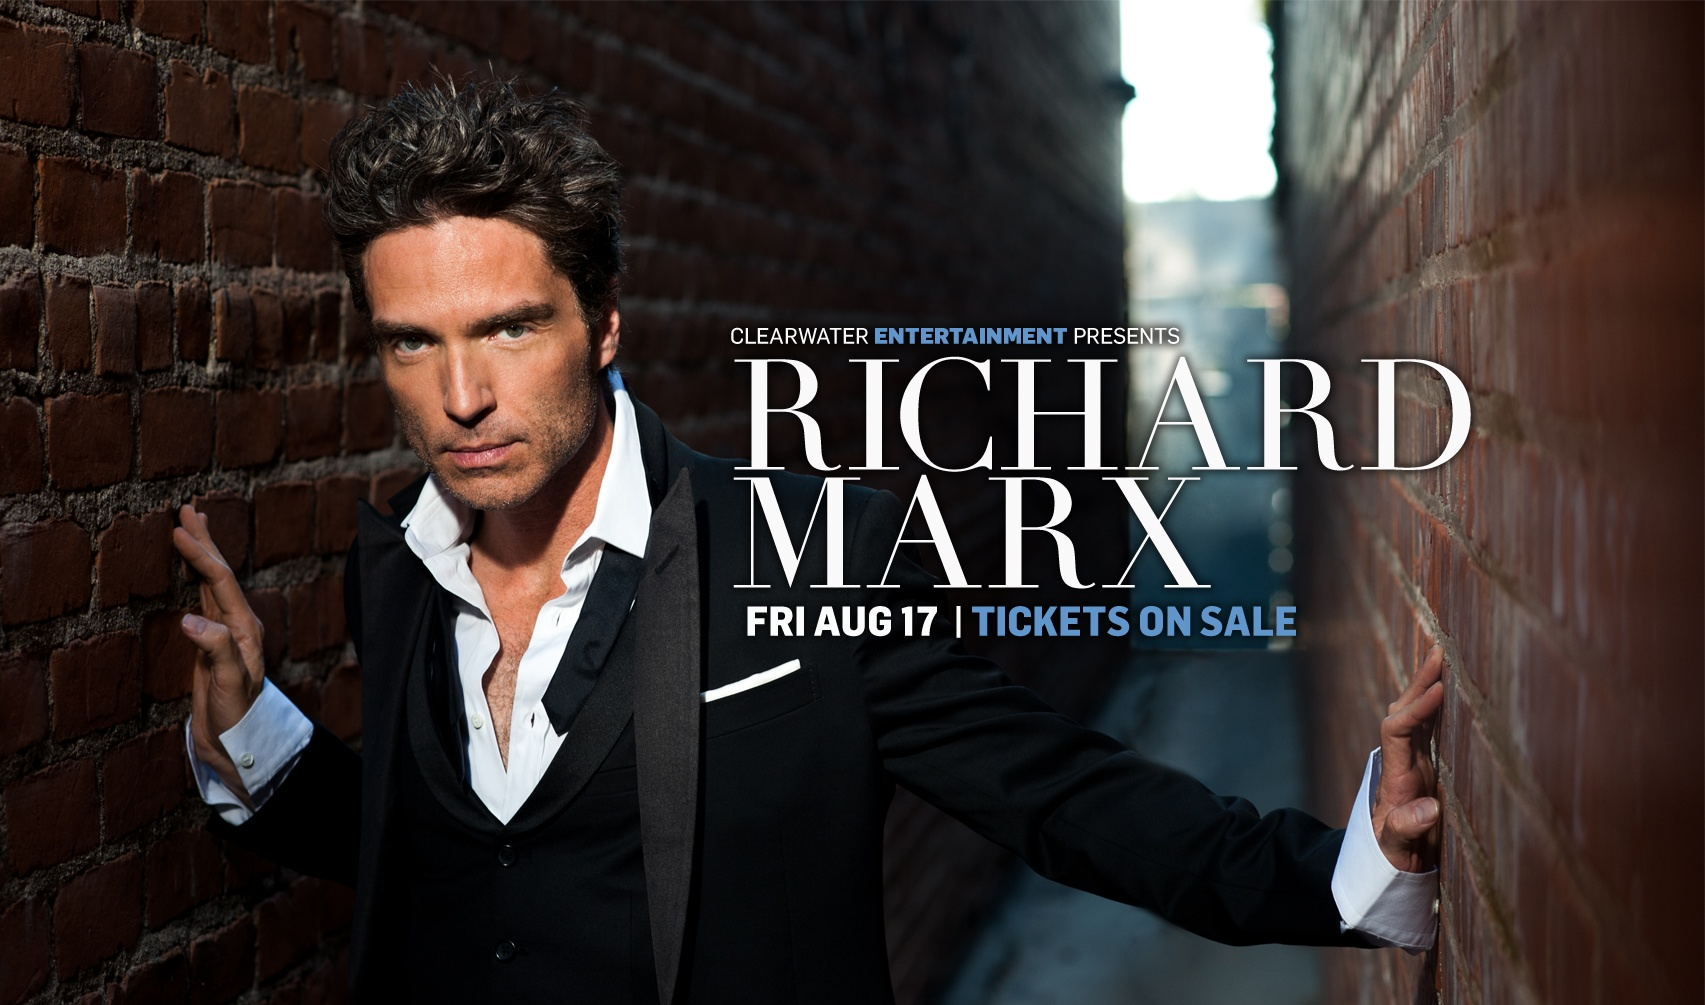 Richard Marx at the Clearwater Casino Resort